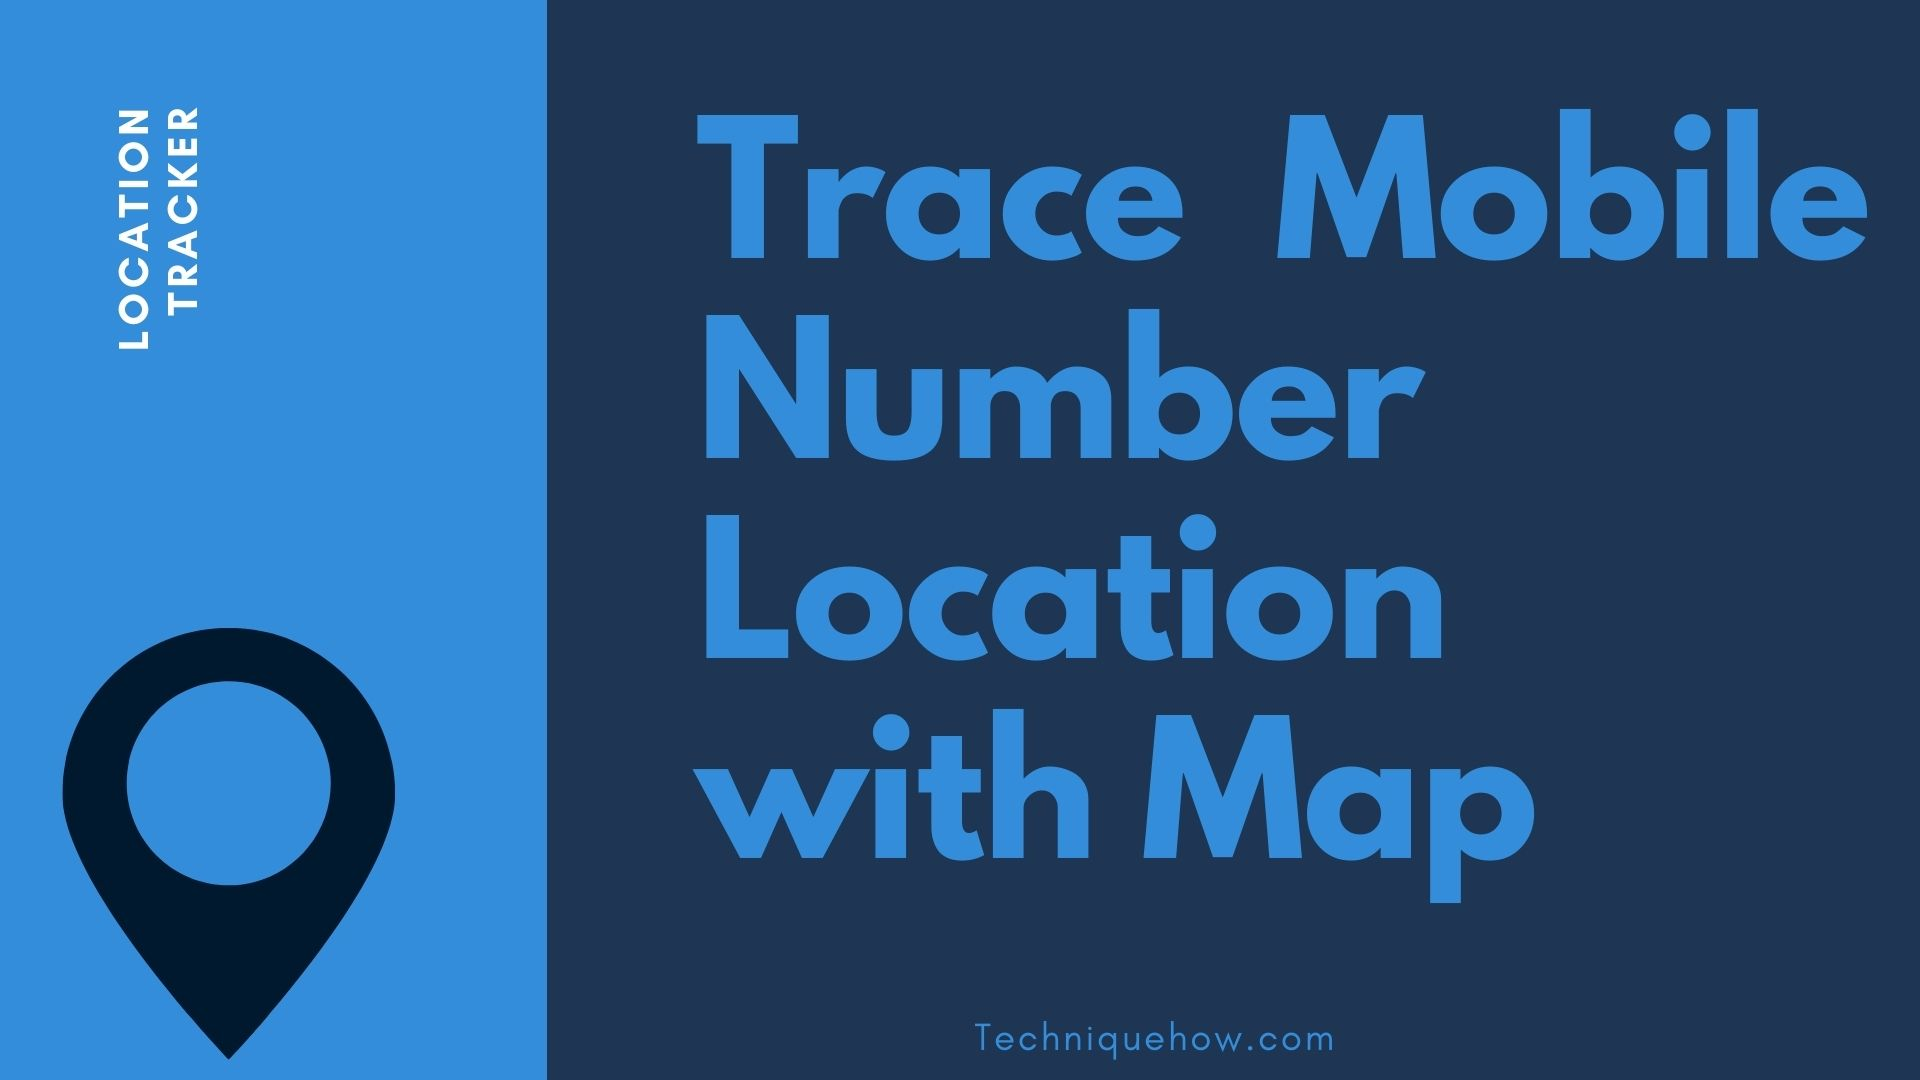 Trace Mobile Number Location with Map